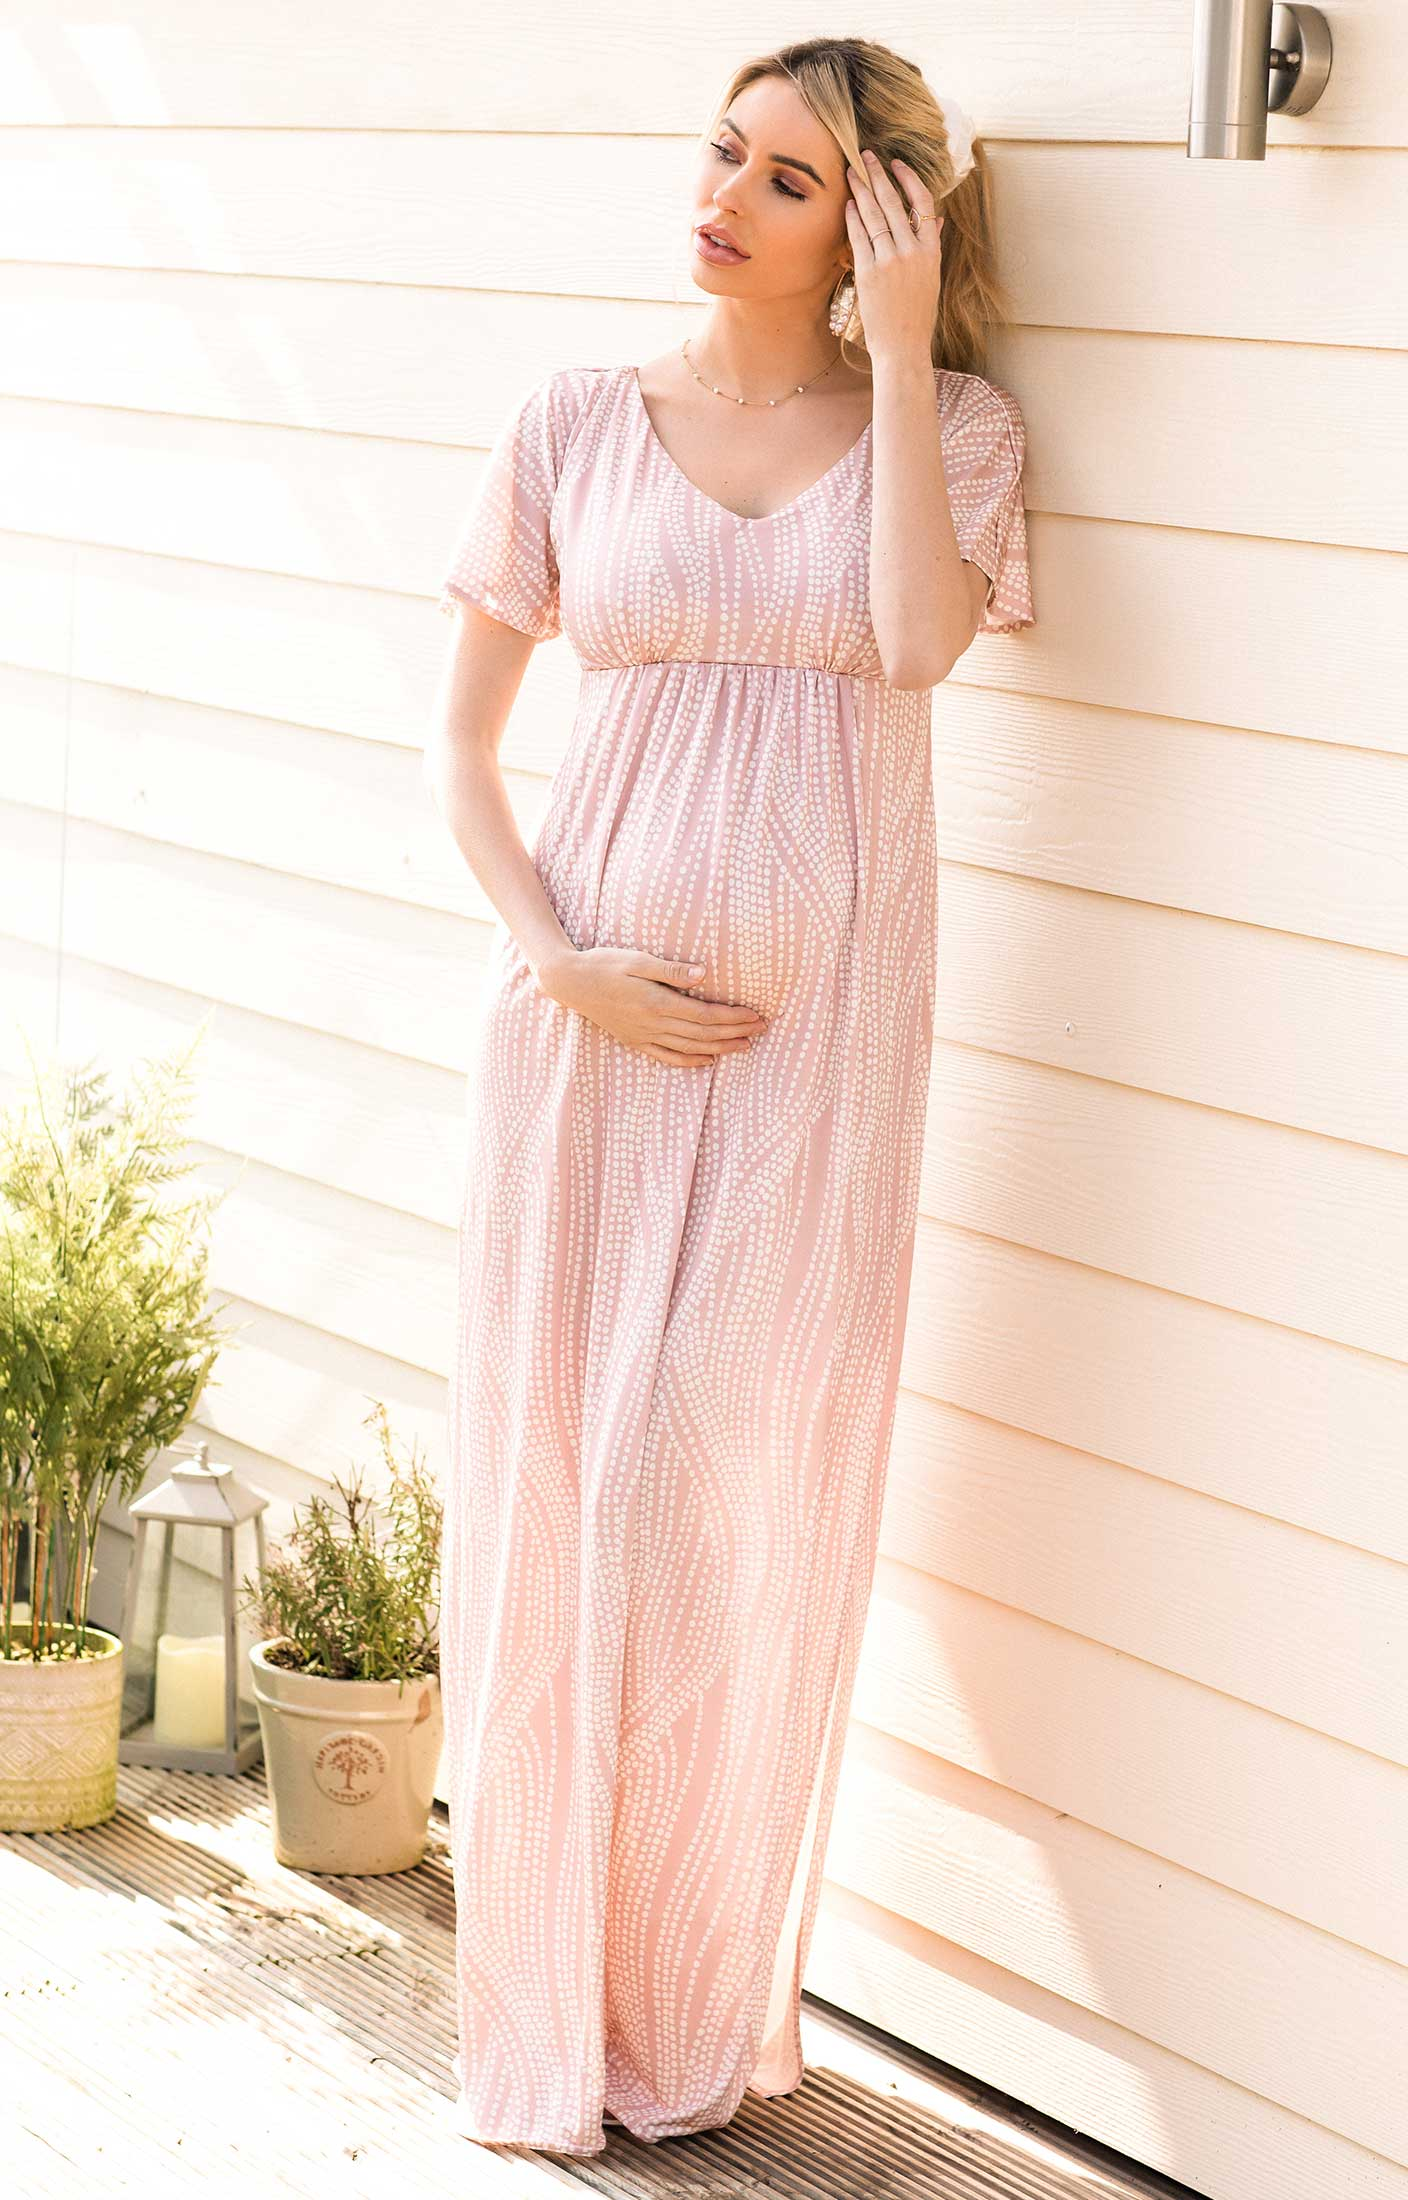 Kimono Maternity Maxi Dress Dotty Pink Maternity Wedding Dresses Evening Wear And Party Clothes By Tiffany Rose Us